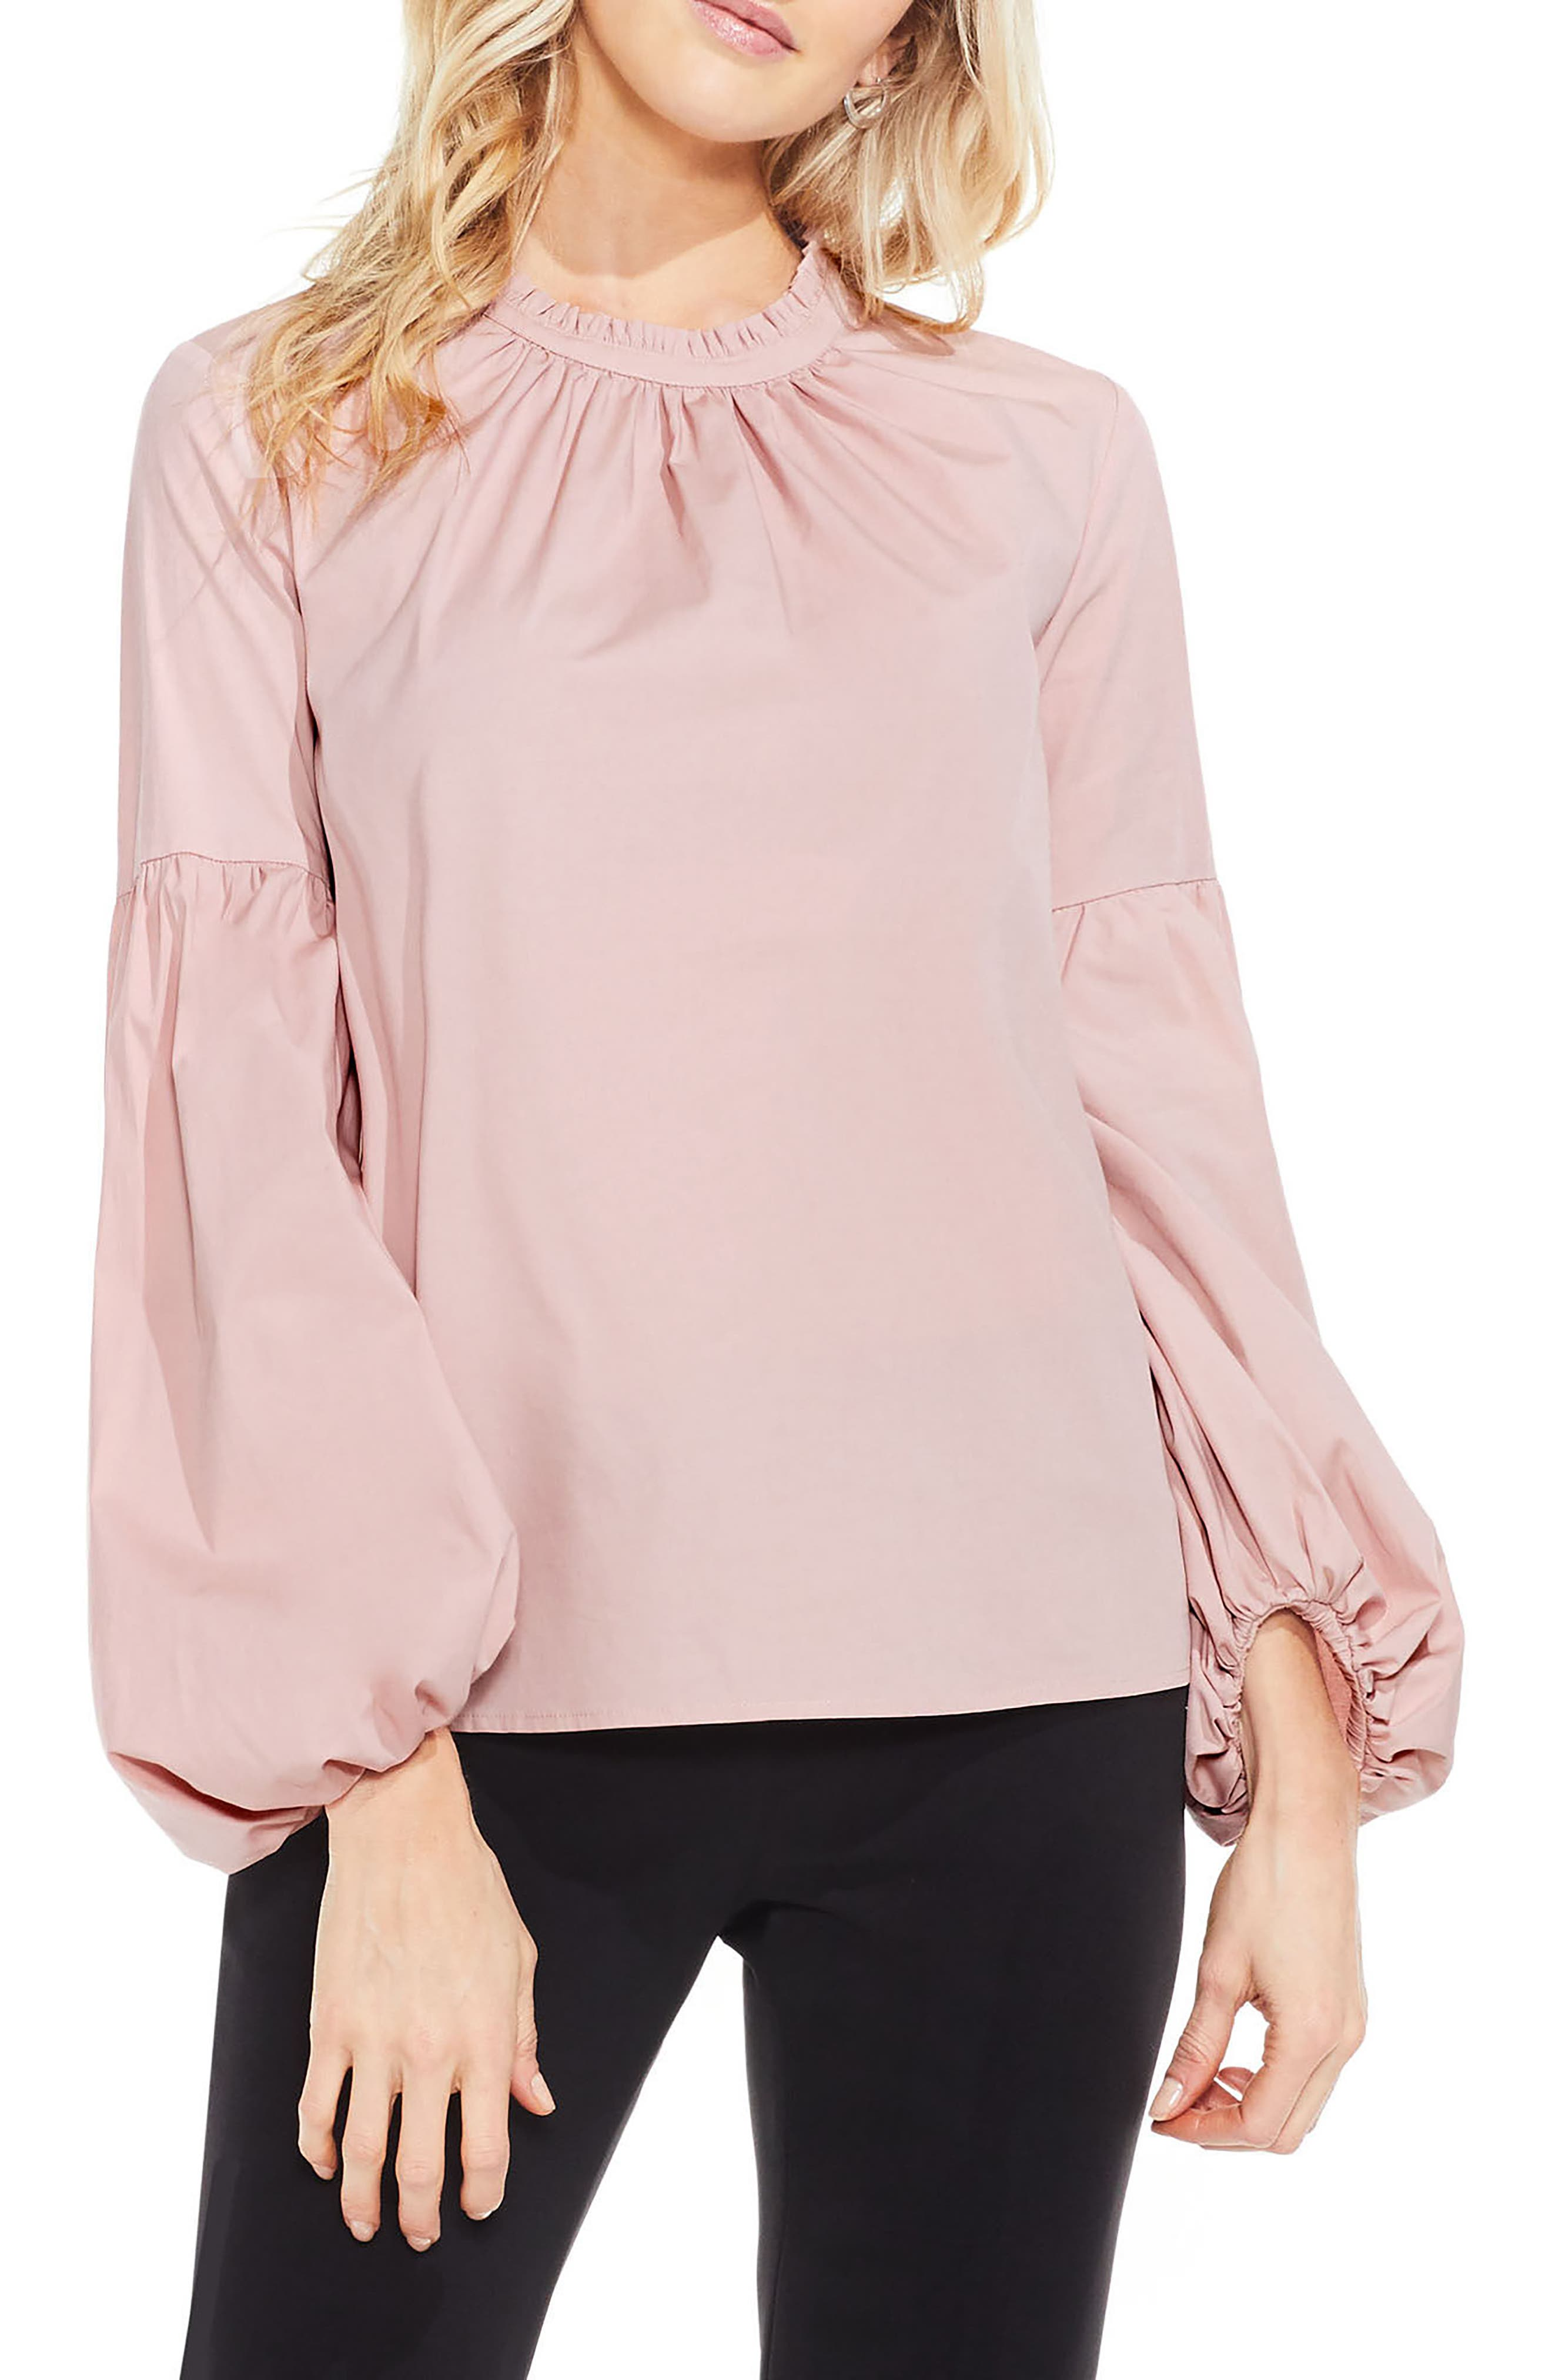 Vince Camuto Balloon Sleeve Blouse (Regular & Petite)